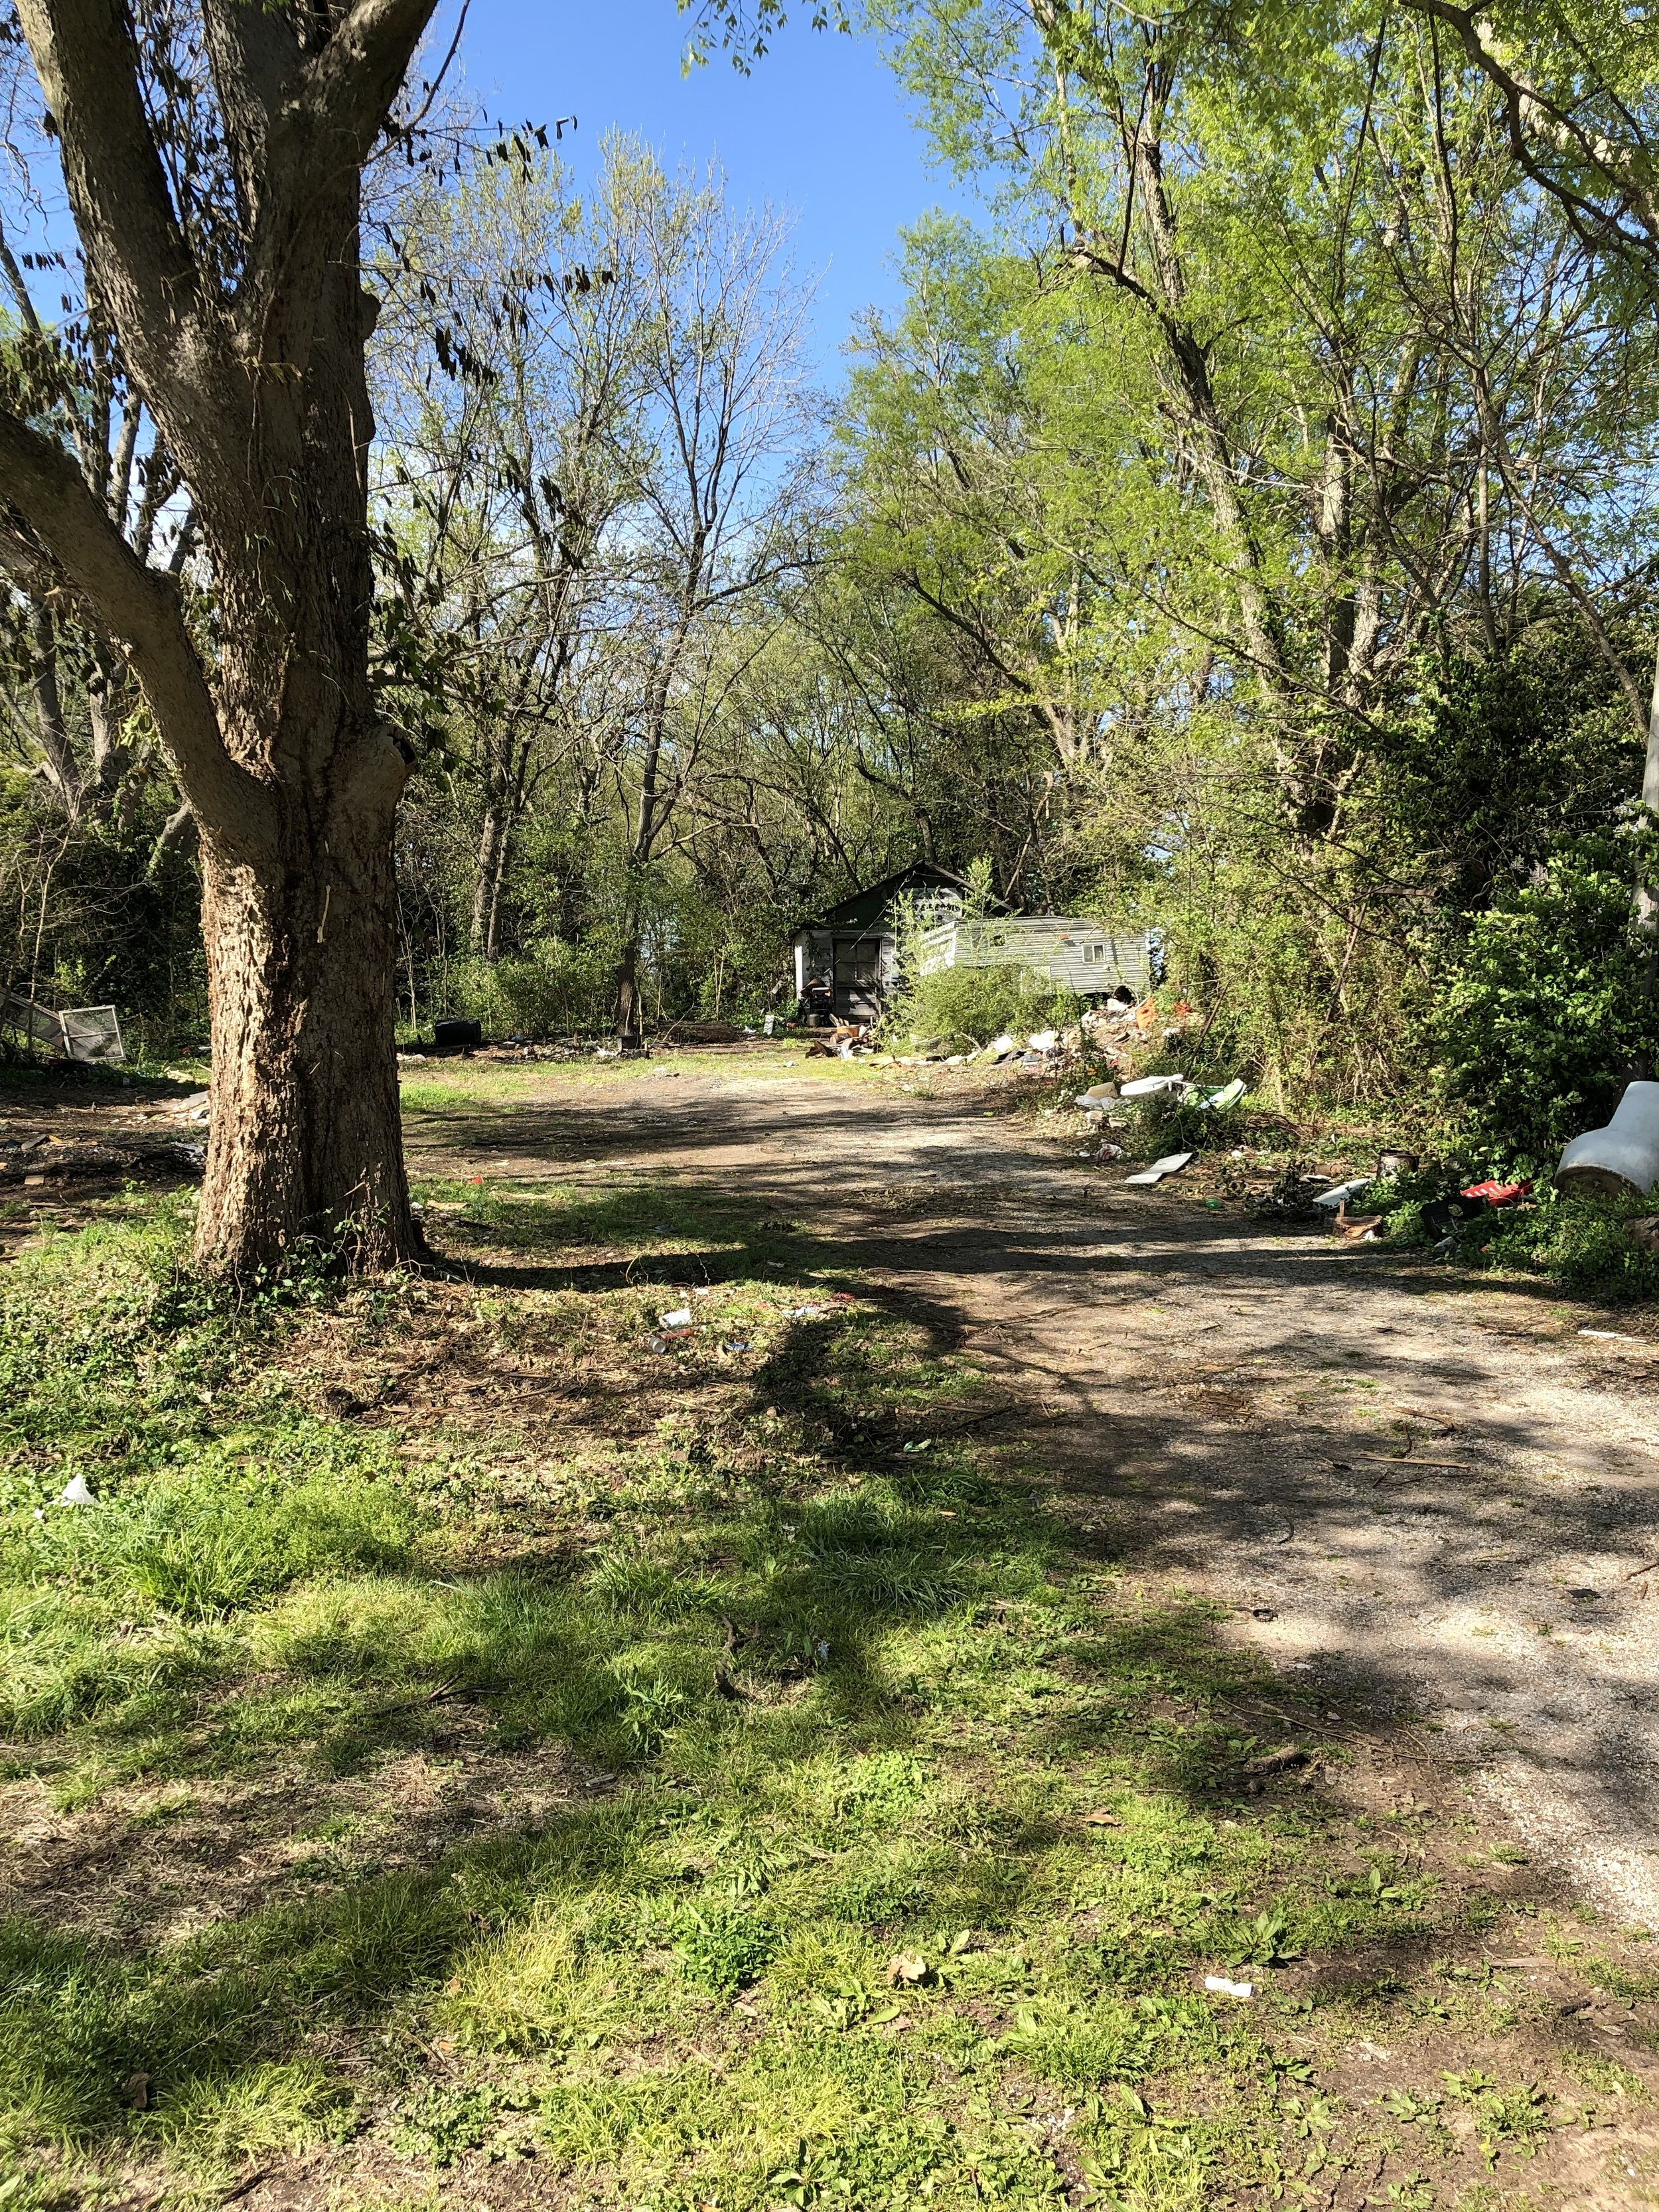 Property Clean Up Drive 4-15-2019 | Rocky Hedge Farm